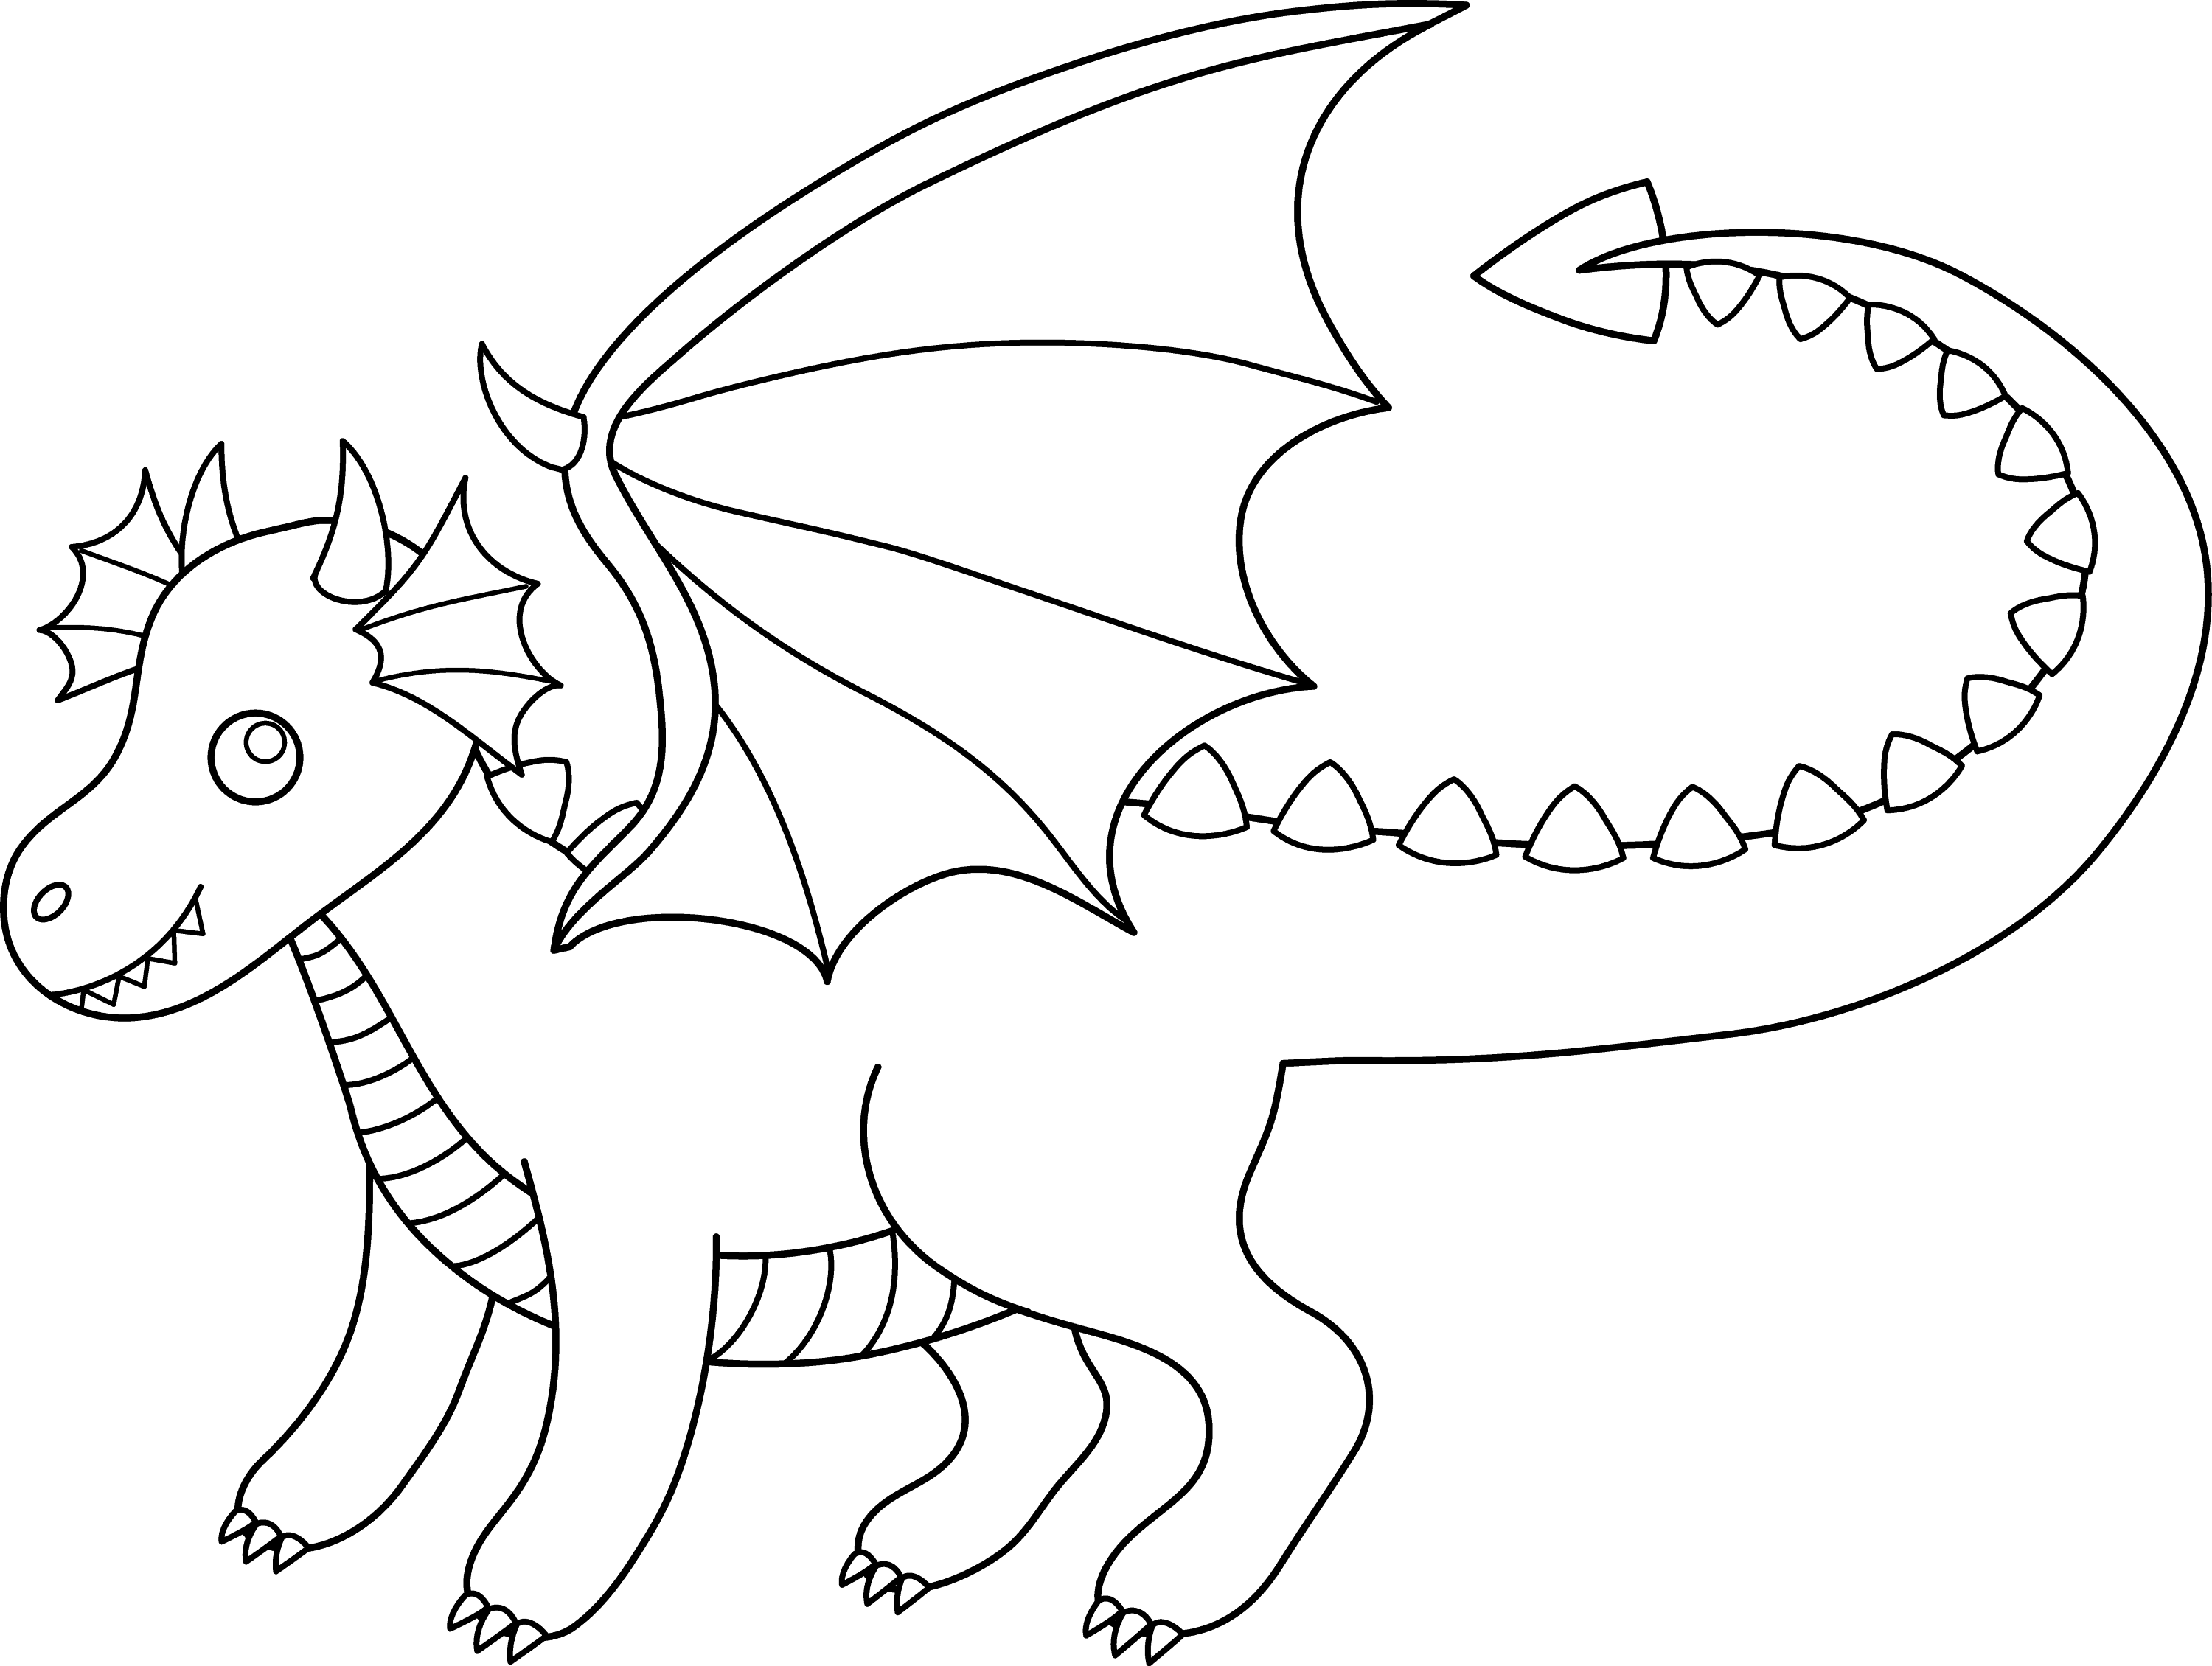 dragon clip art coloring pages - photo#1